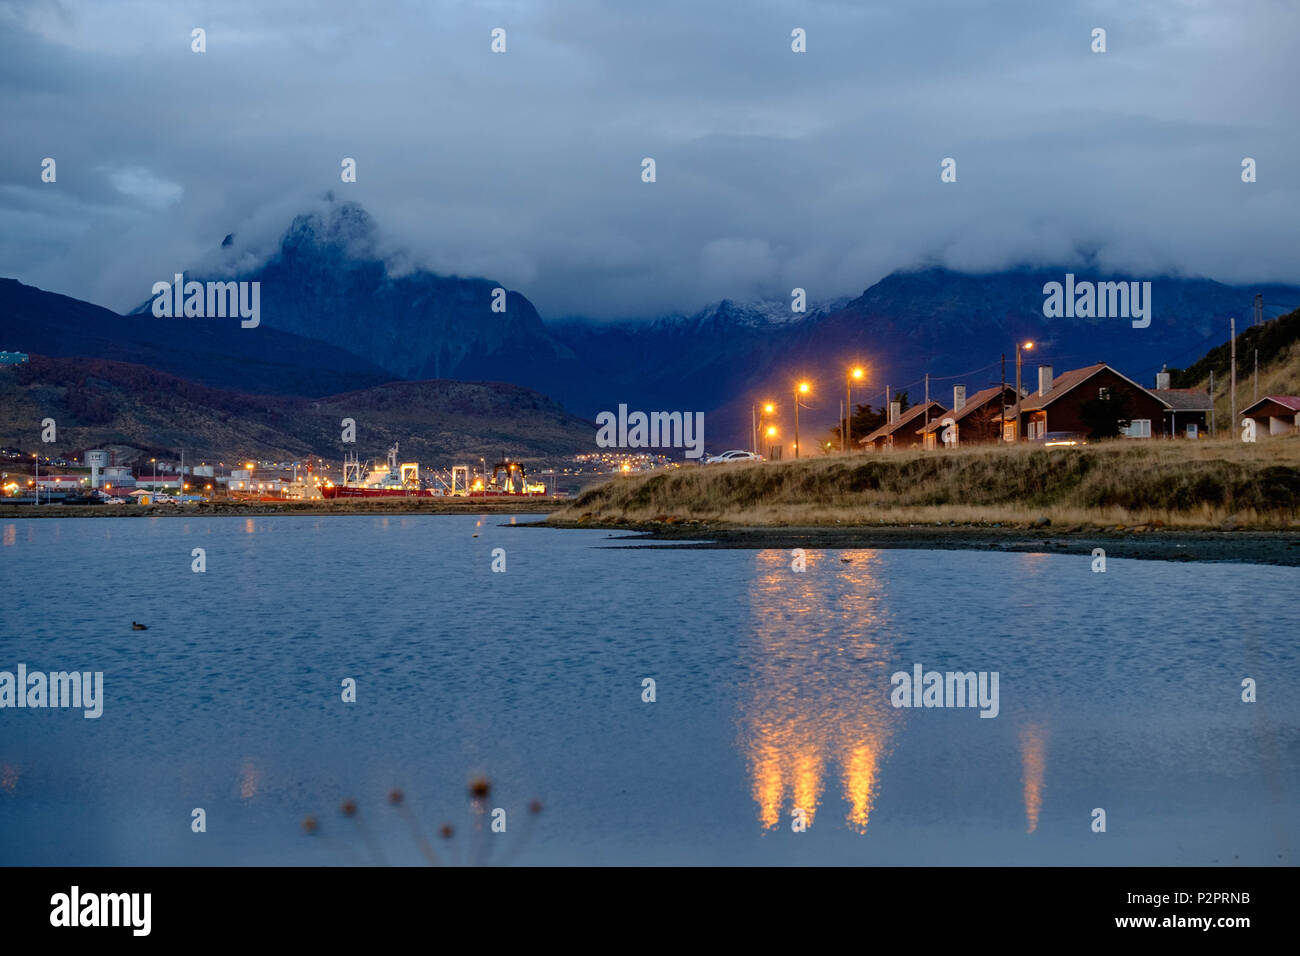 The 'Bahìa Encerrada' reflects some street lights in Ushuaia. In the background lies the small harbor, followed by the partly hidden mountains. Stock Photo